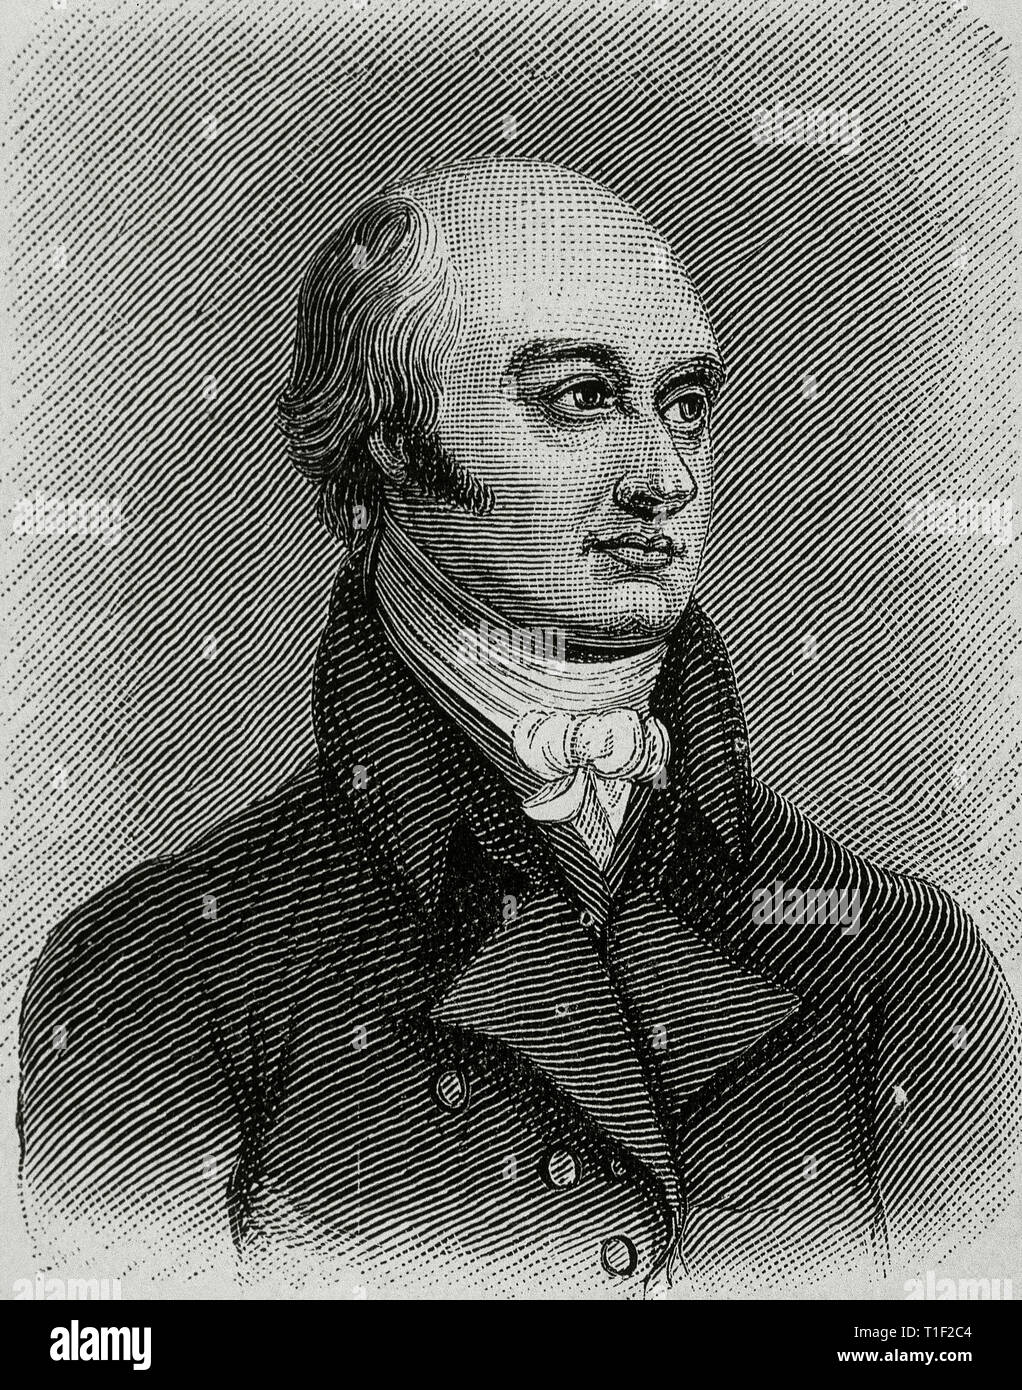 George Canning (1770-1827). British Prime Minister. Engraving by Freeman. - Stock Image